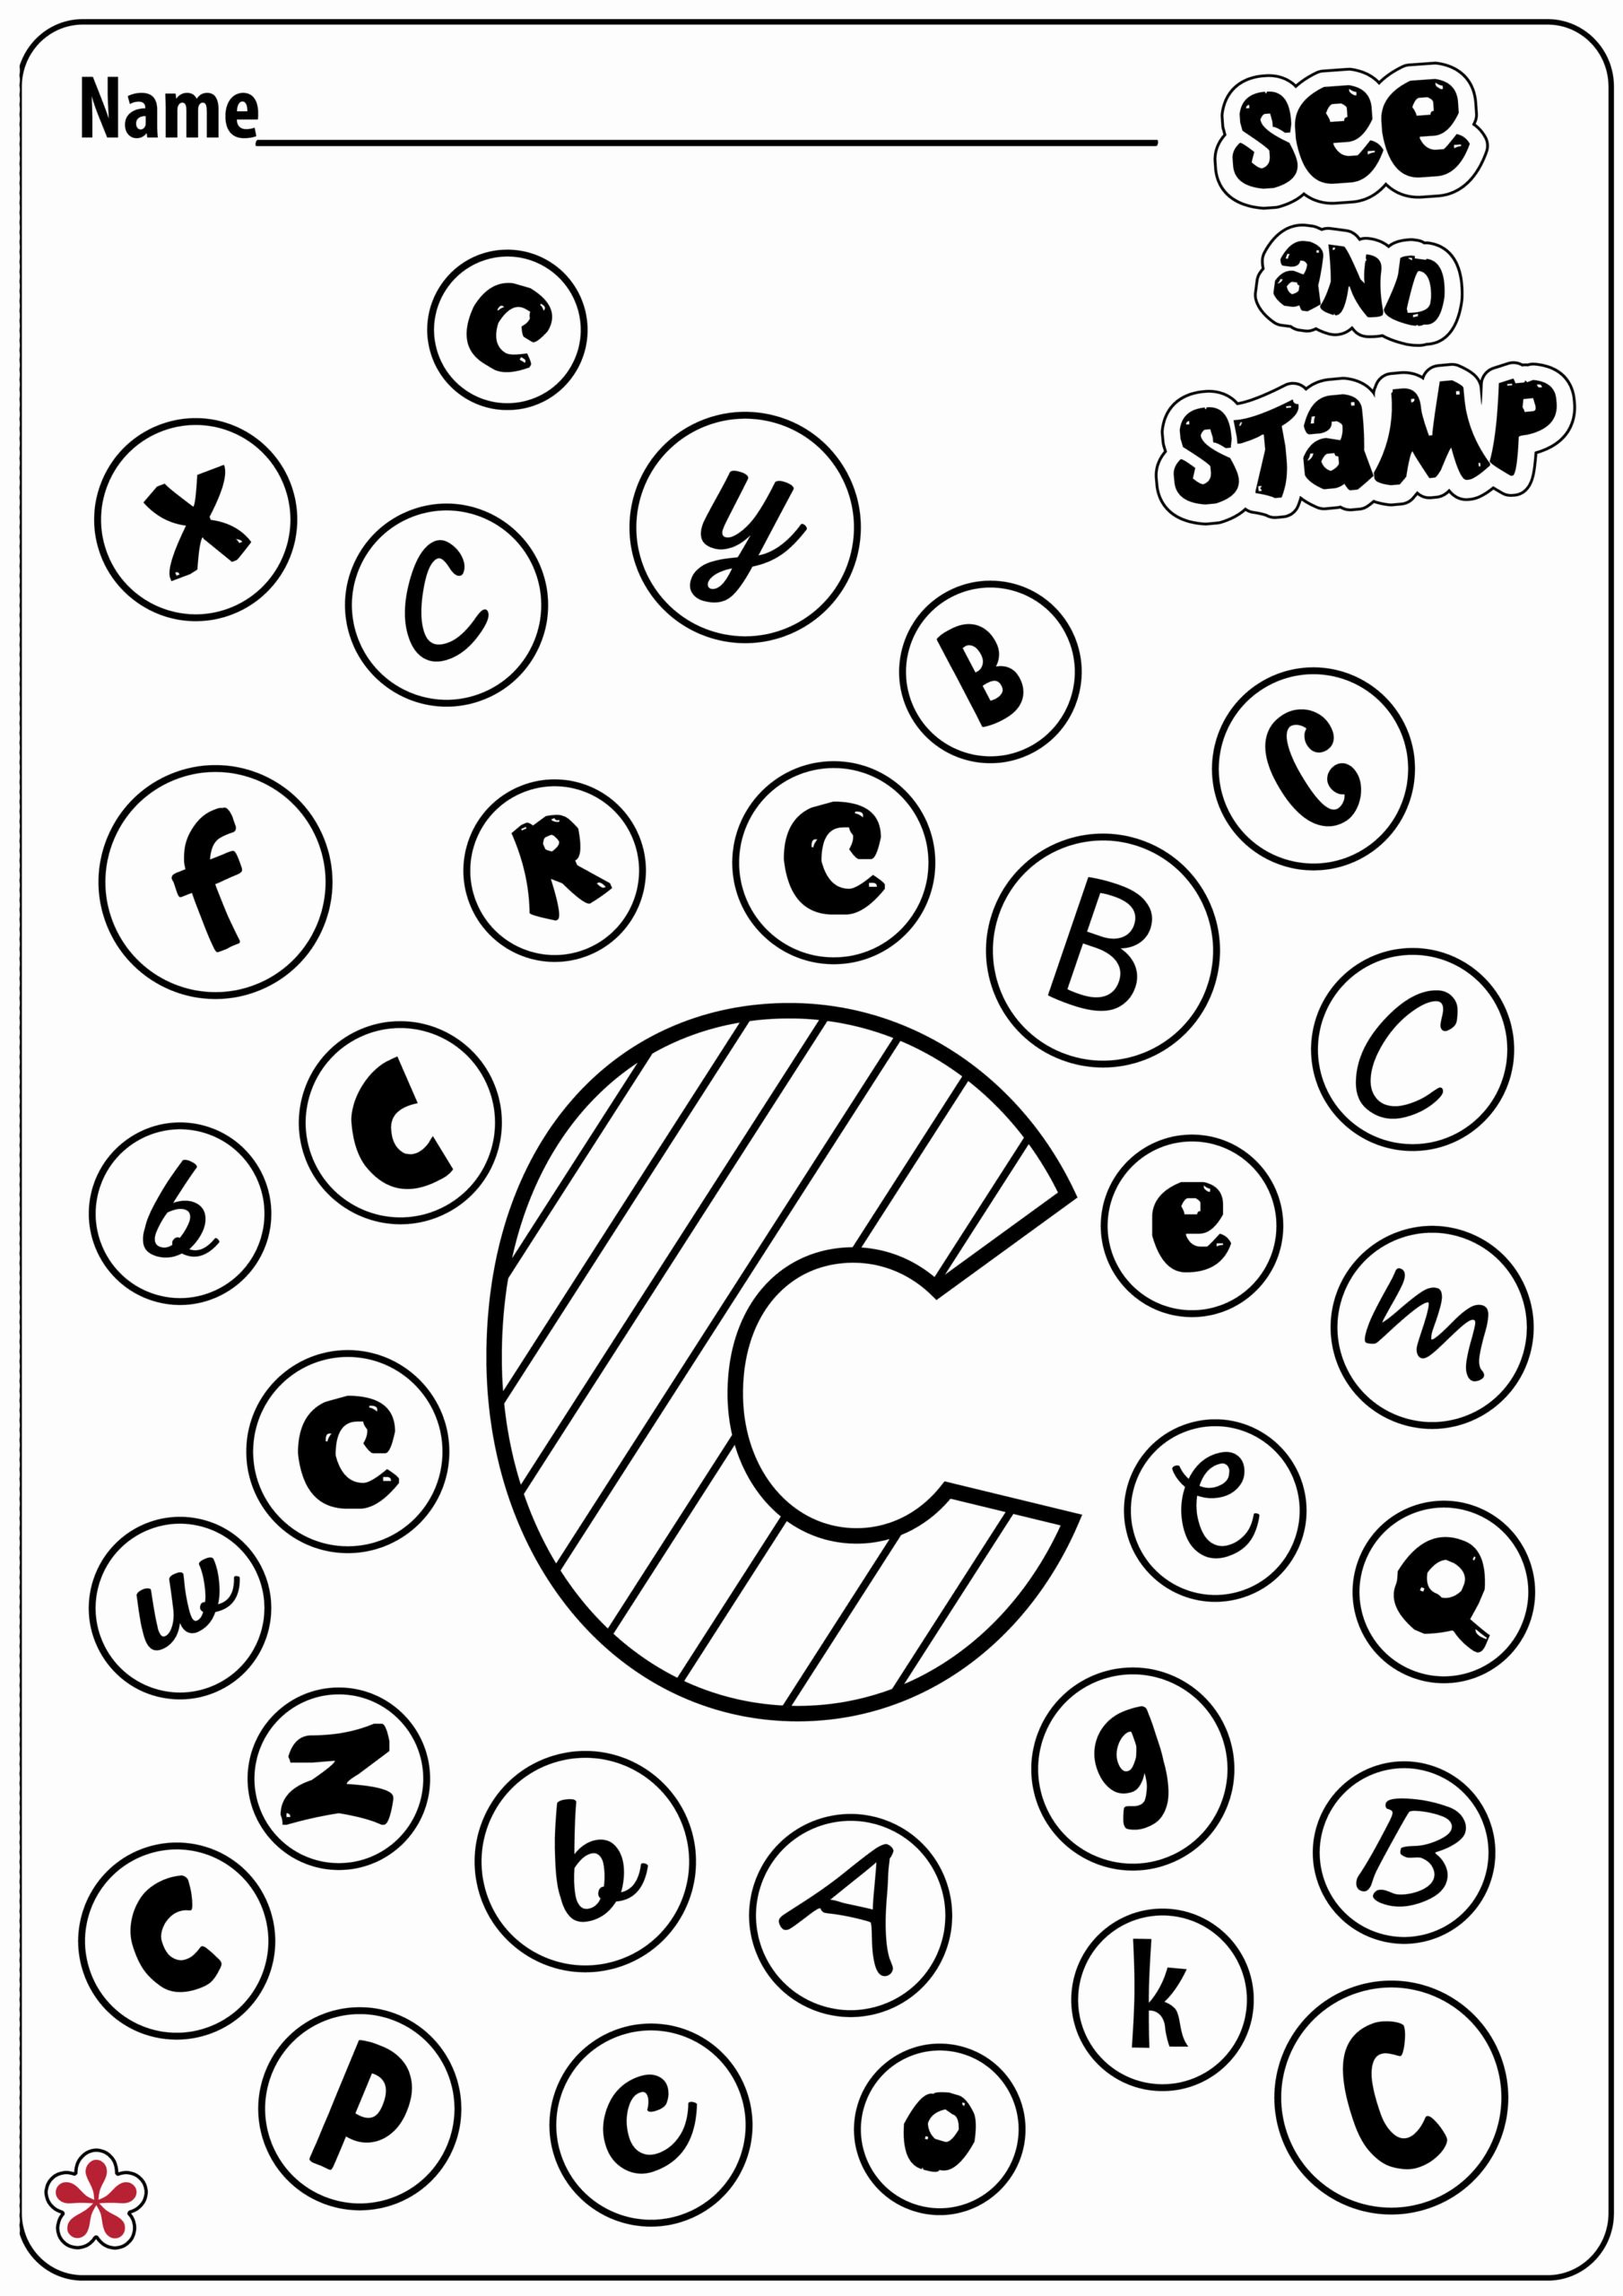 Christmas Alphabet Worksheets for Preschoolers New Worksheet at Worksheets for Kindergarten Spring Mathksheet